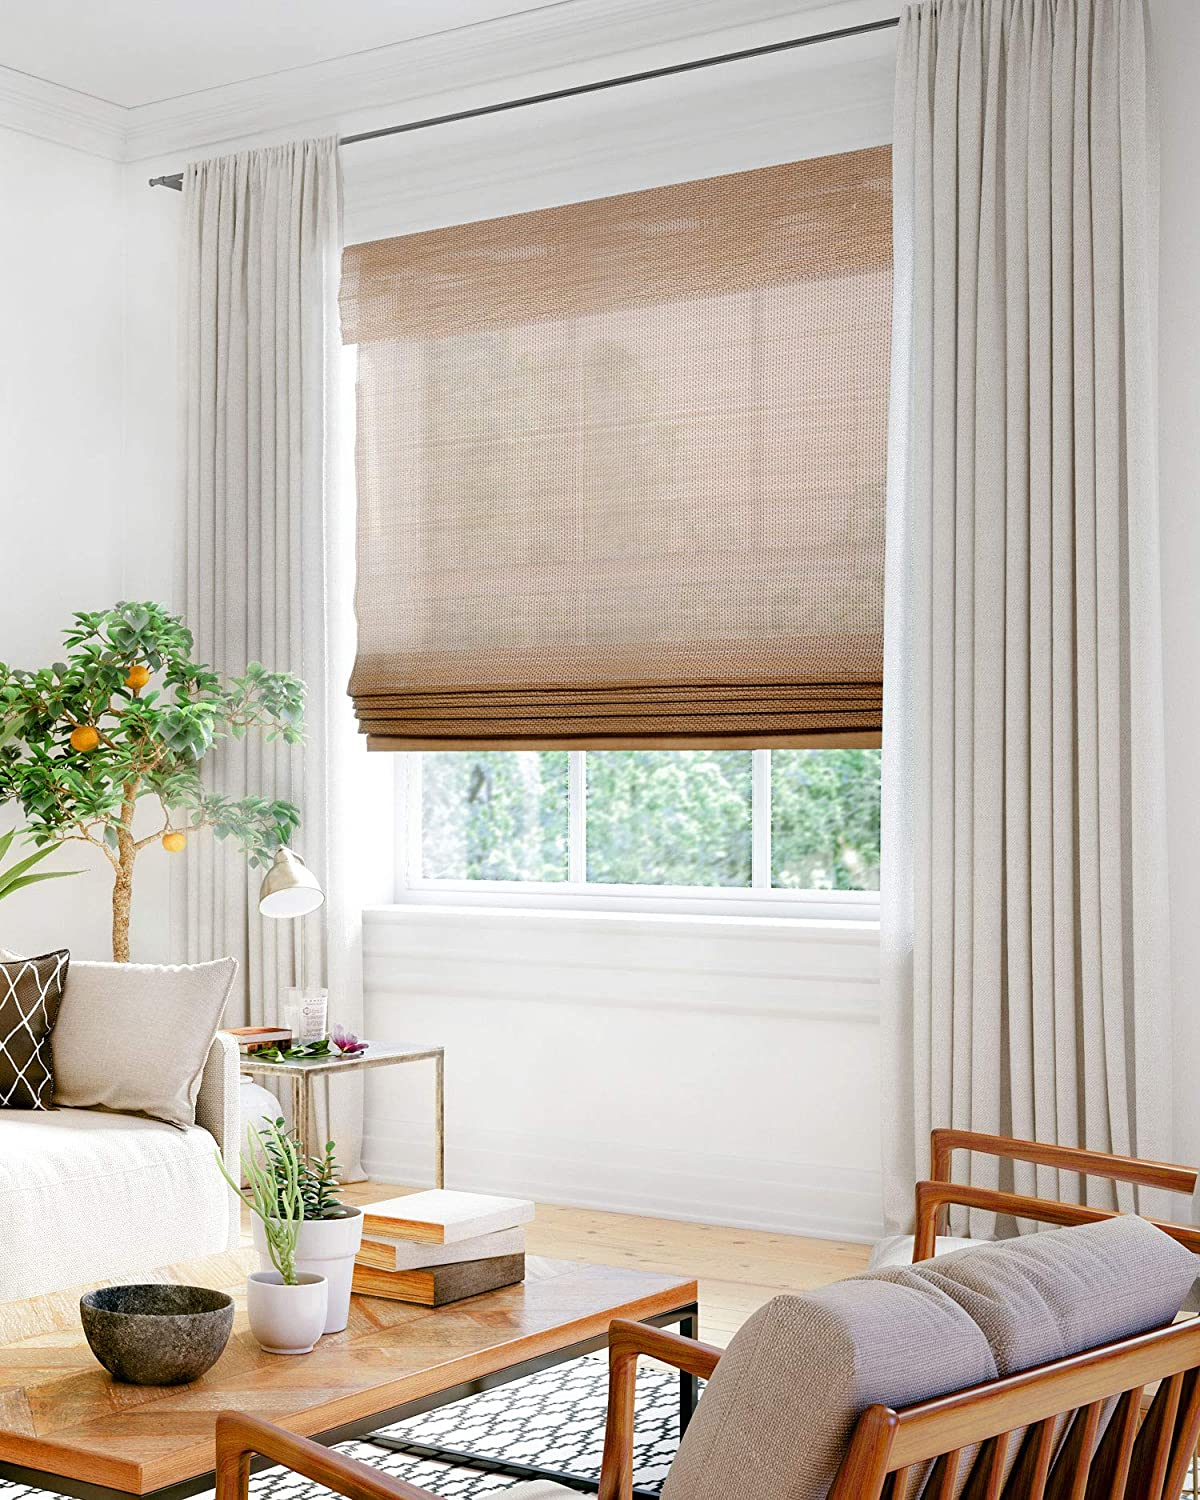 Living room window with brown covering